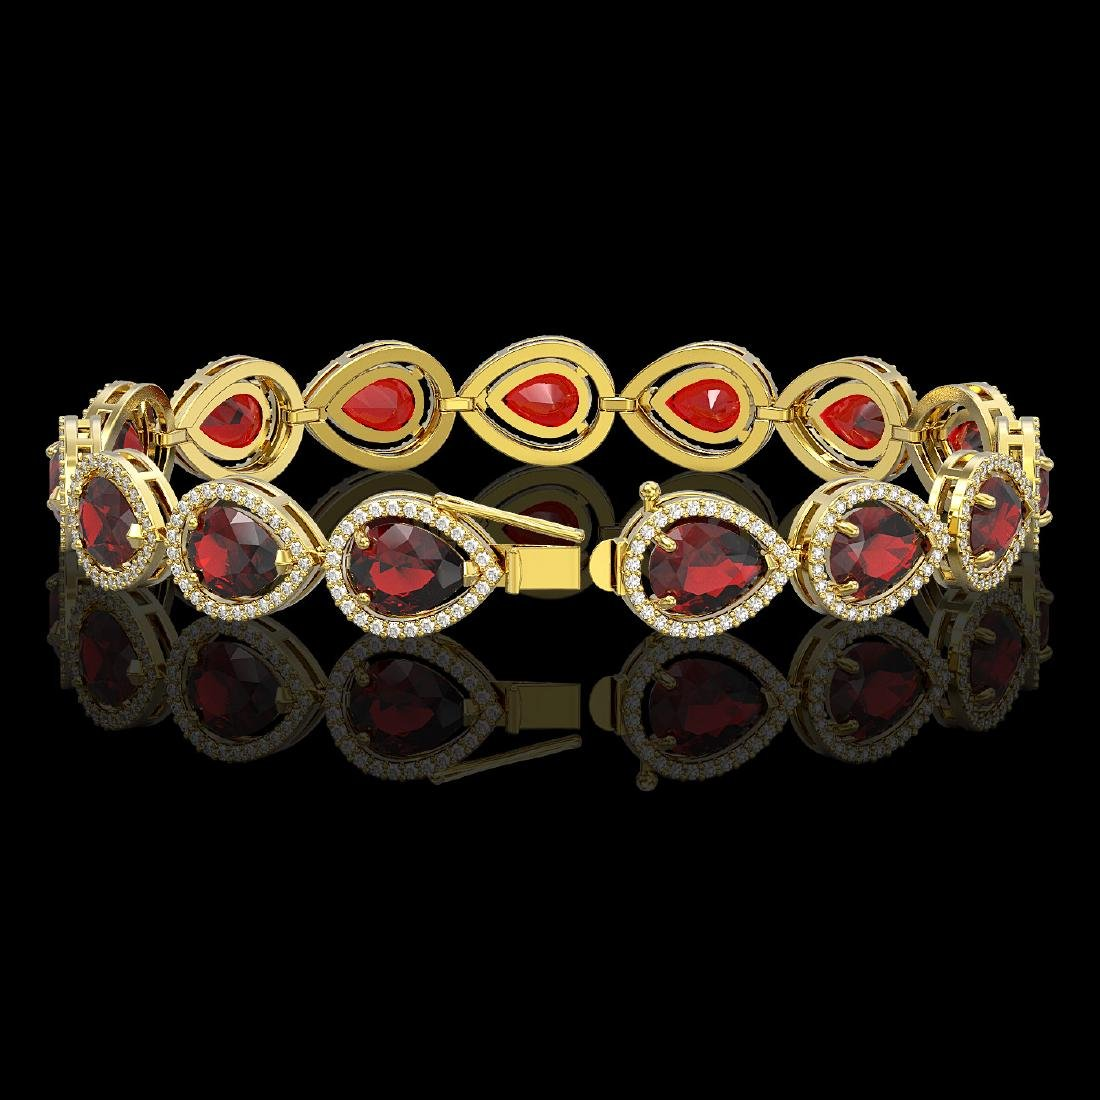 17.45 CTW Garnet & Diamond Halo Bracelet 10K Yellow - 2